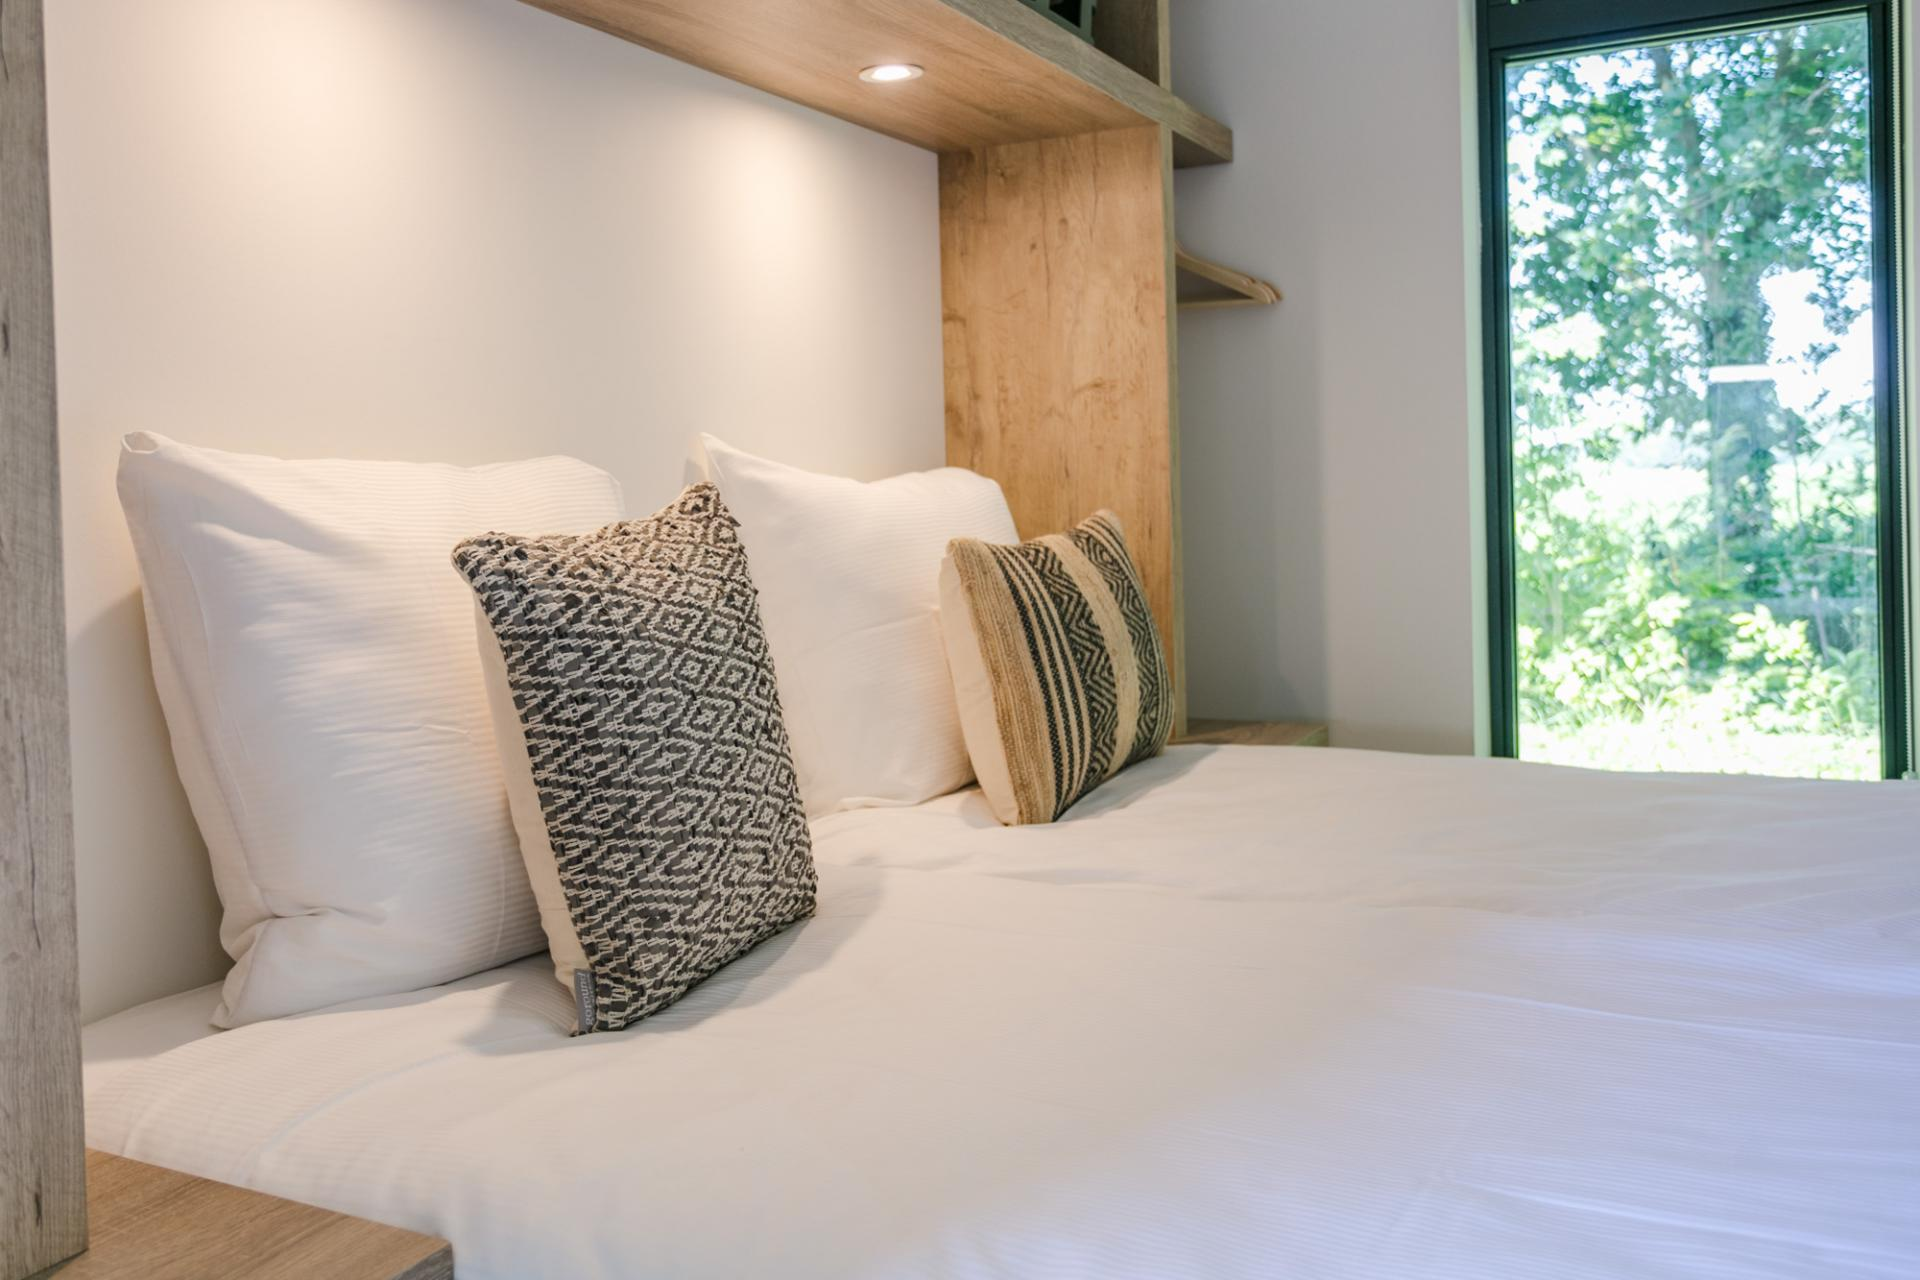 Double bed at Gooilanden Lodges